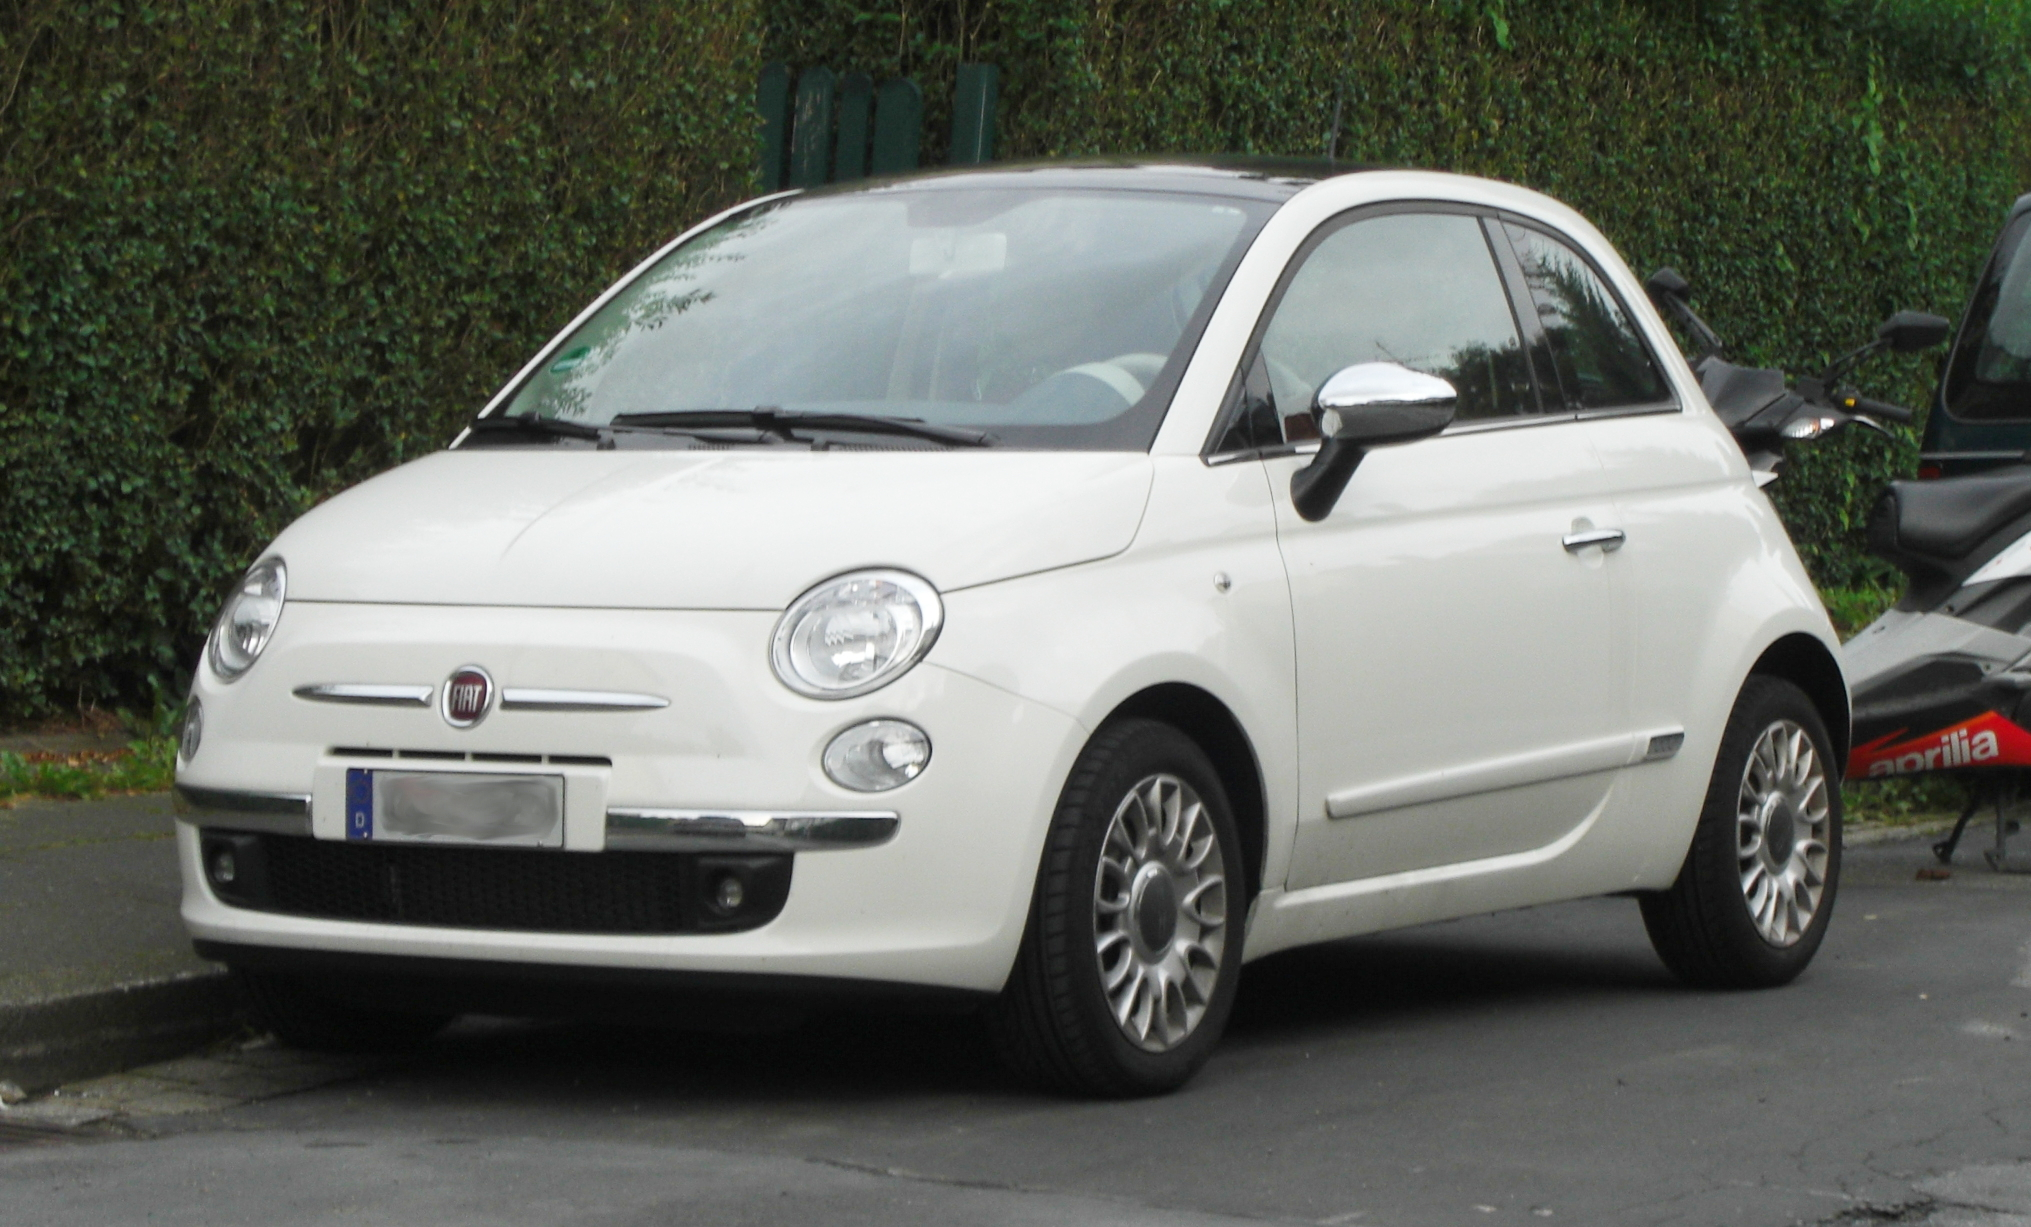 Wallpaper HD For Iphone Fiat 500